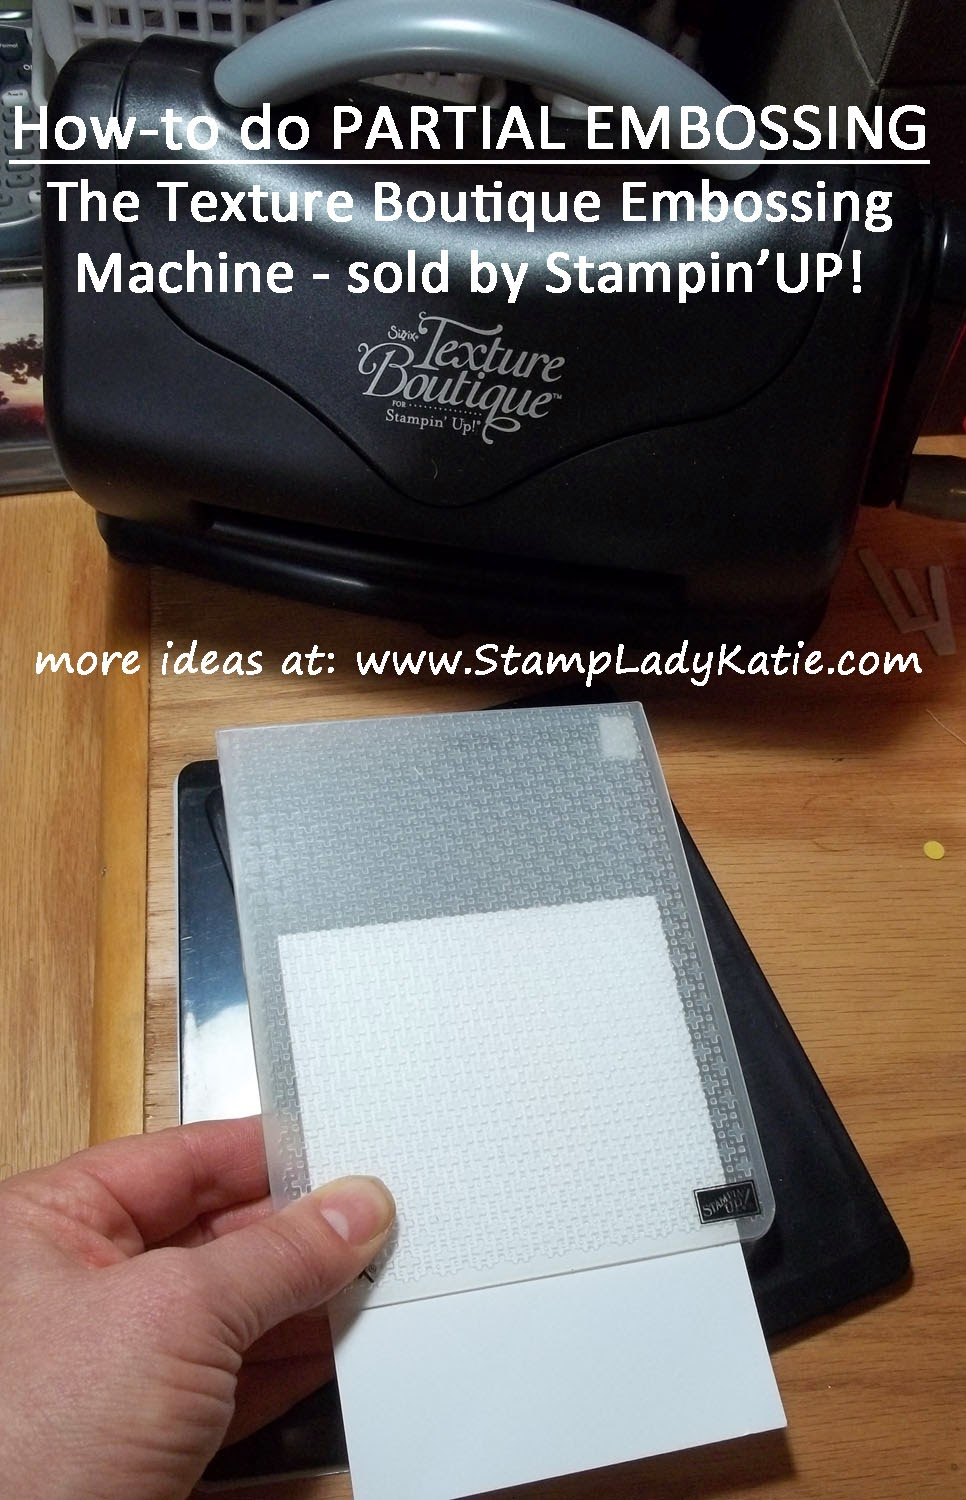 How to do Partial embossing with Stampin'UP!'s Texture Boutique embossing machine